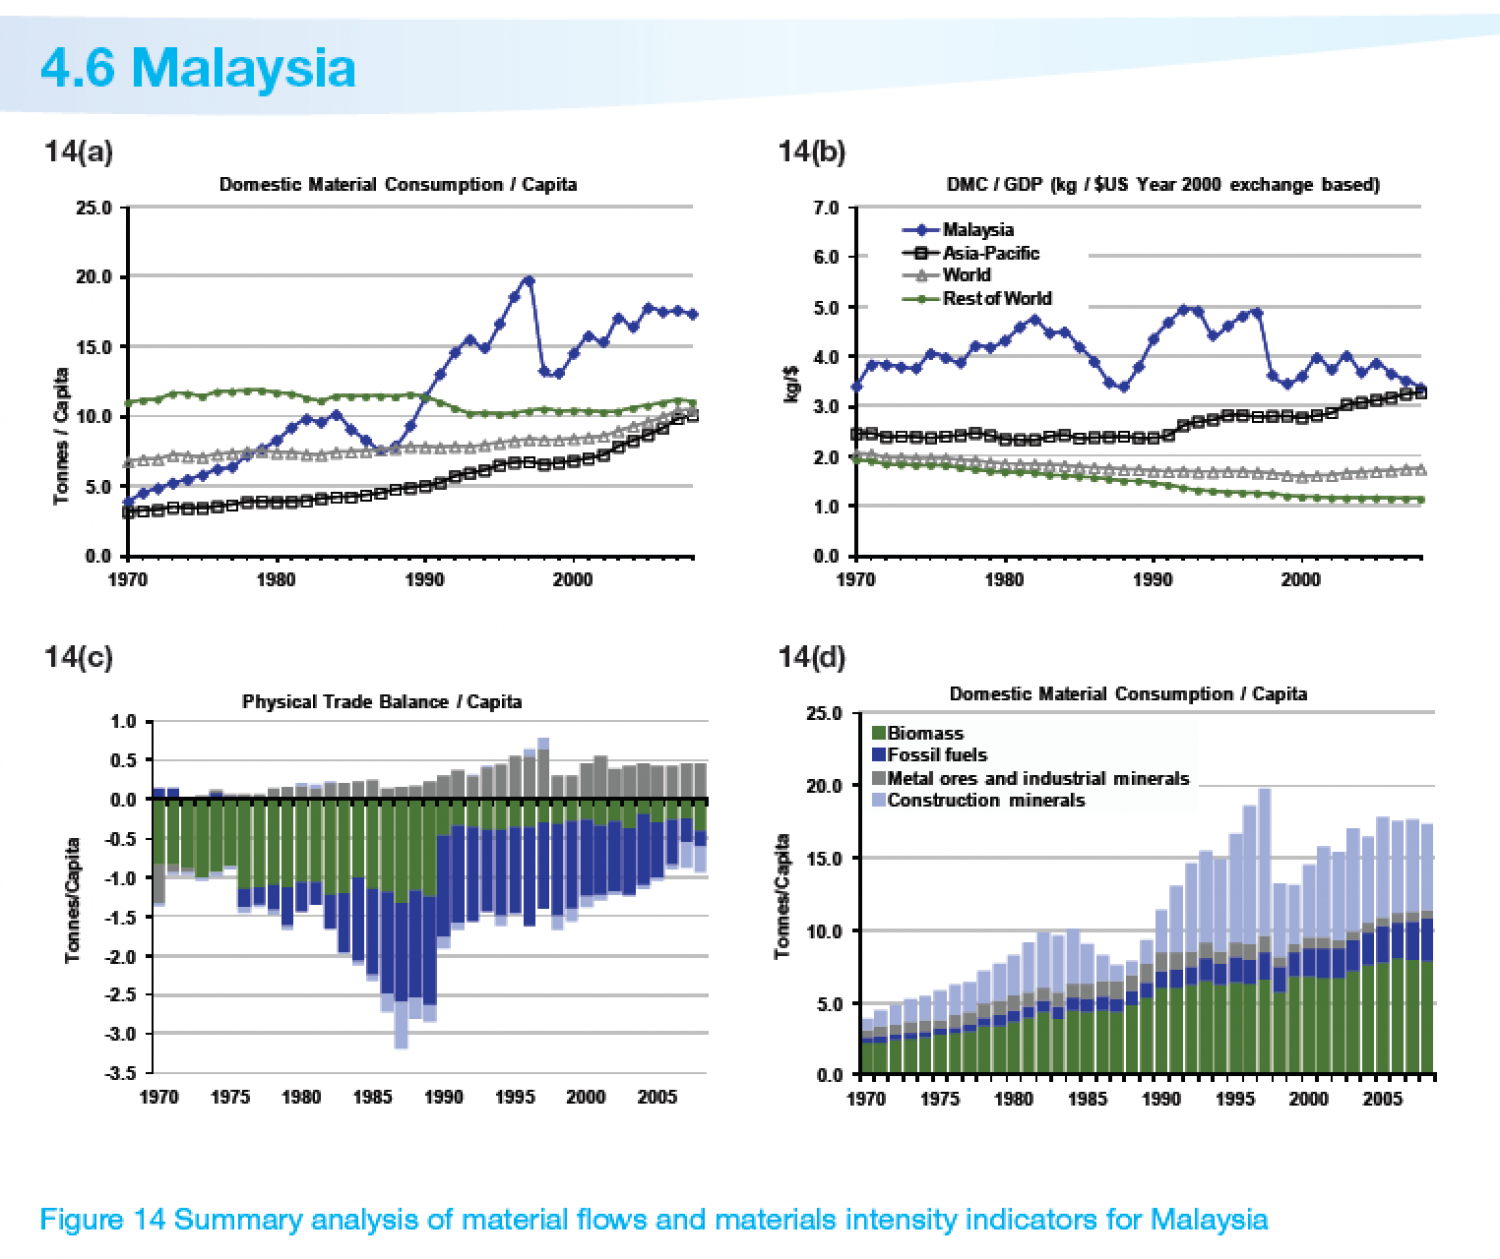 MALAYSIA : Summary analysis of material flows and materials intensity indicators for Malaysia Infographic